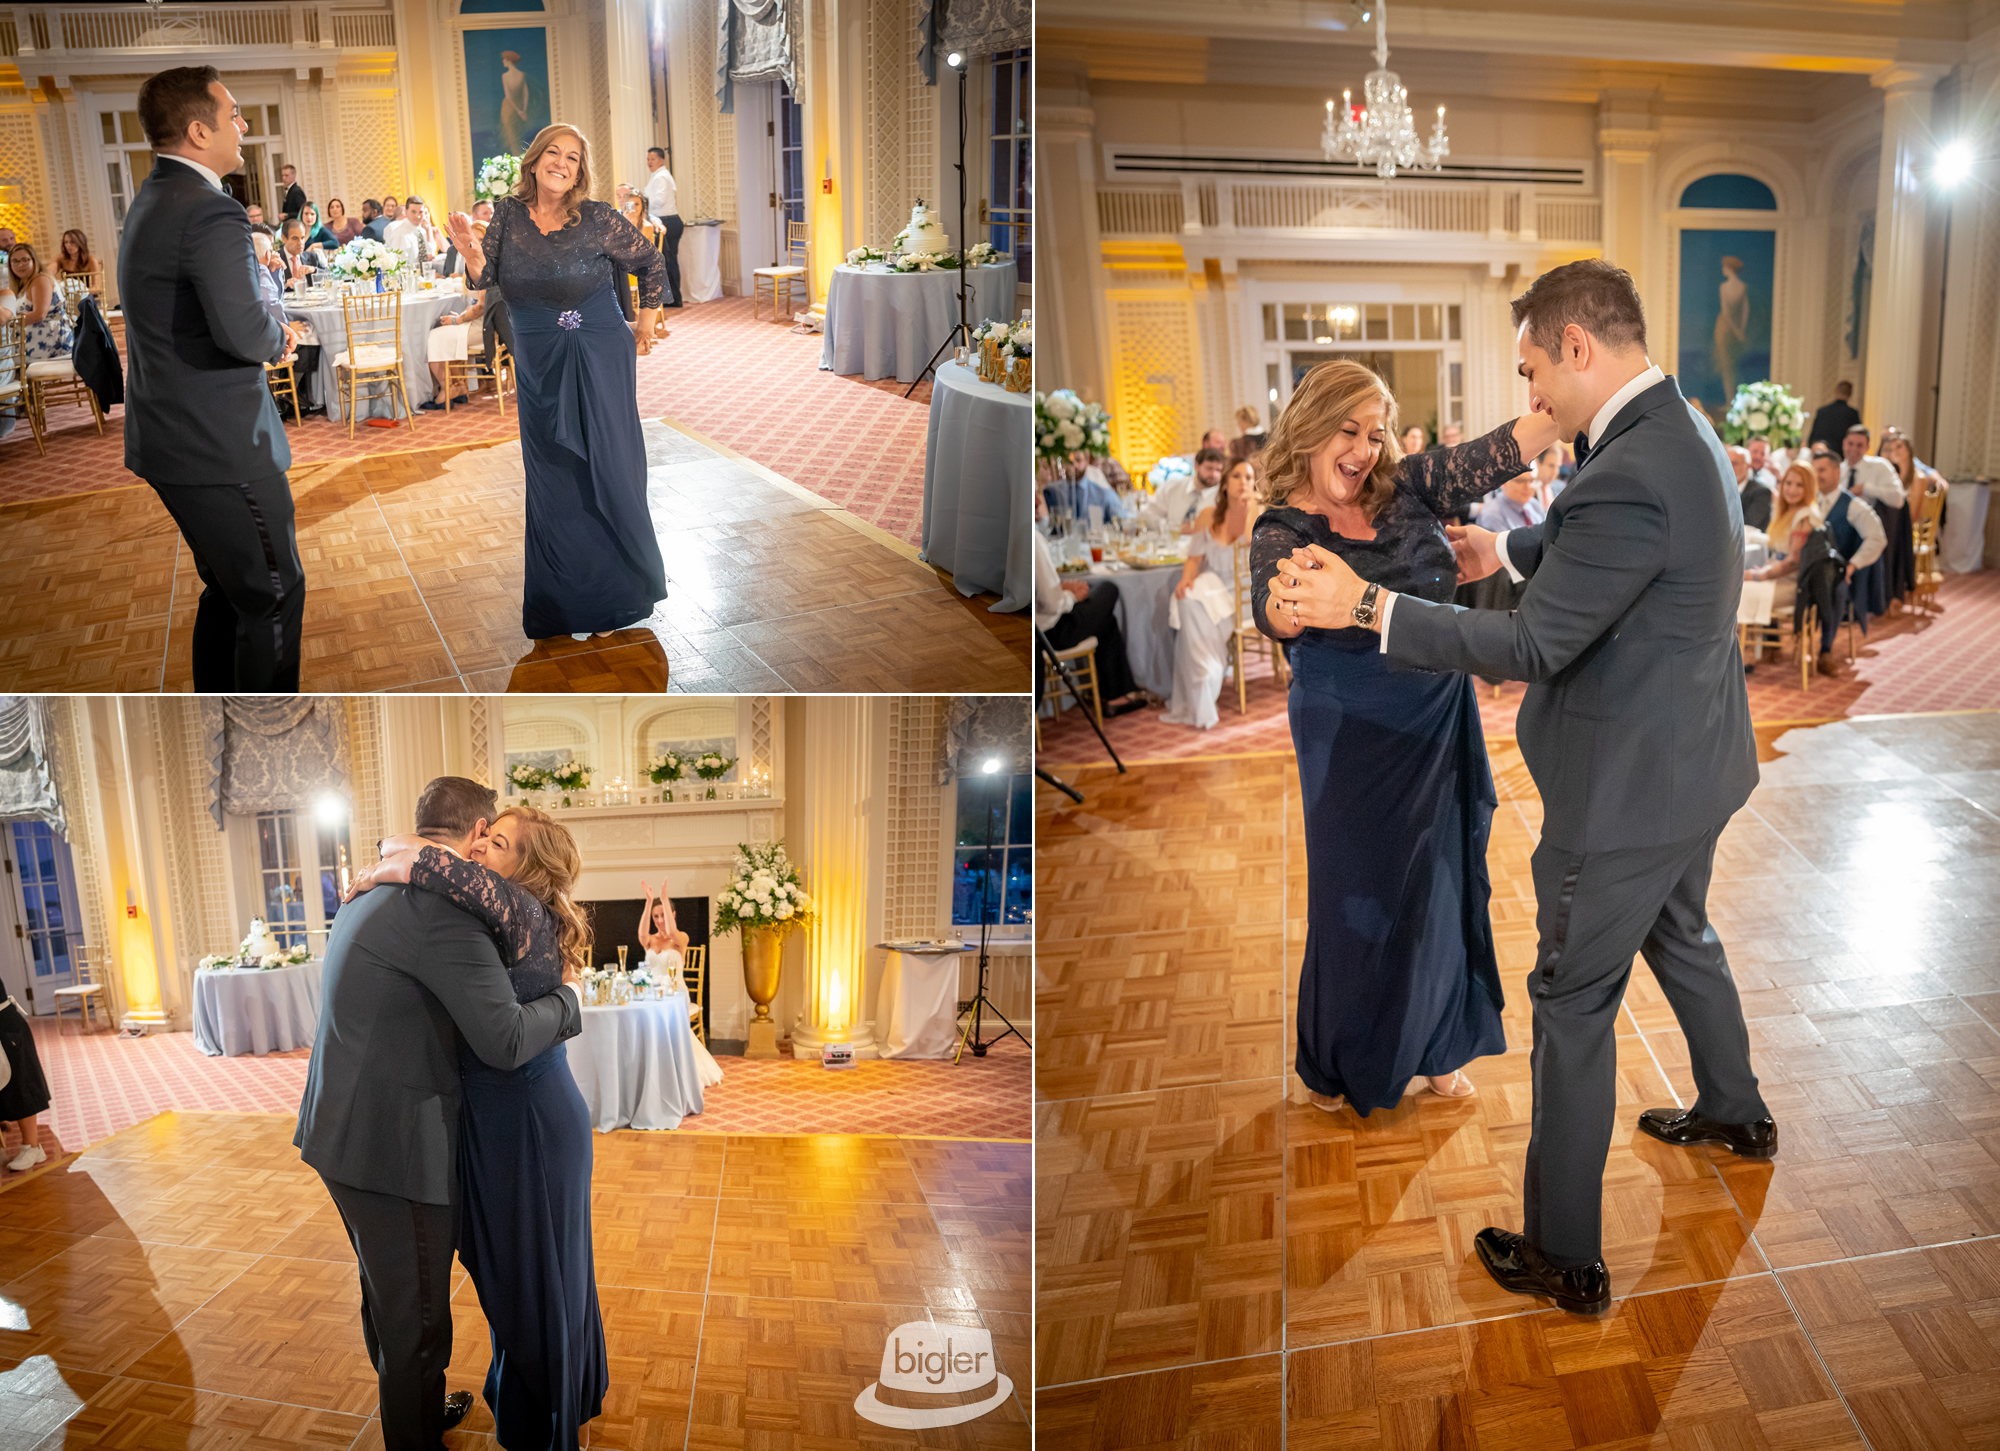 20180915_-_33_-_Ally_and_Andrew_Otesaga_Wedding